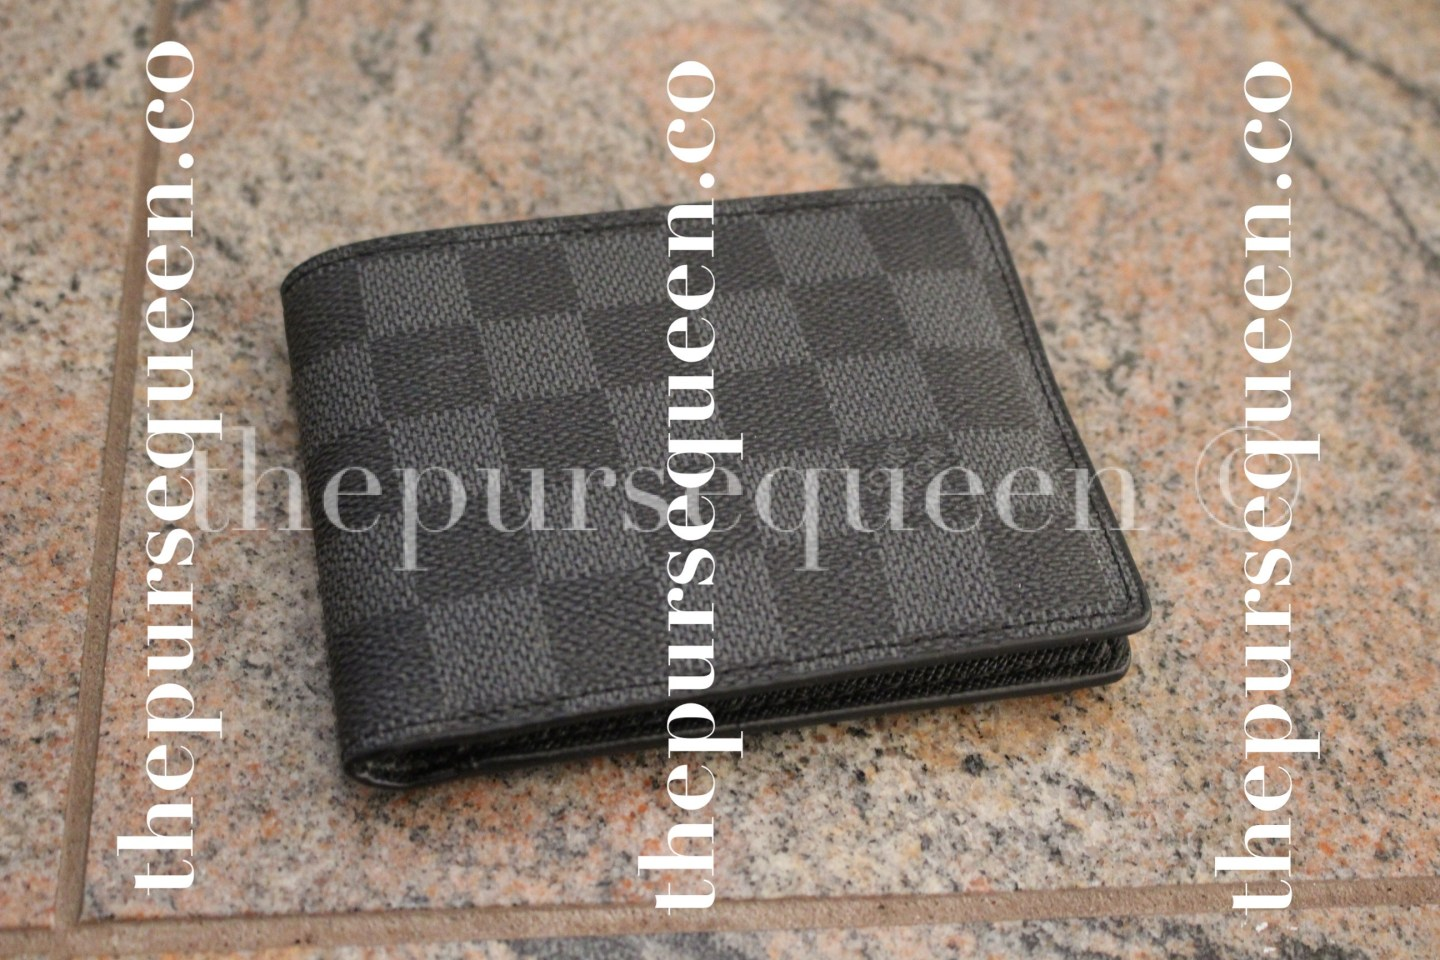 Louis Vuitton Damier Graphite Multiple Replica Wallet